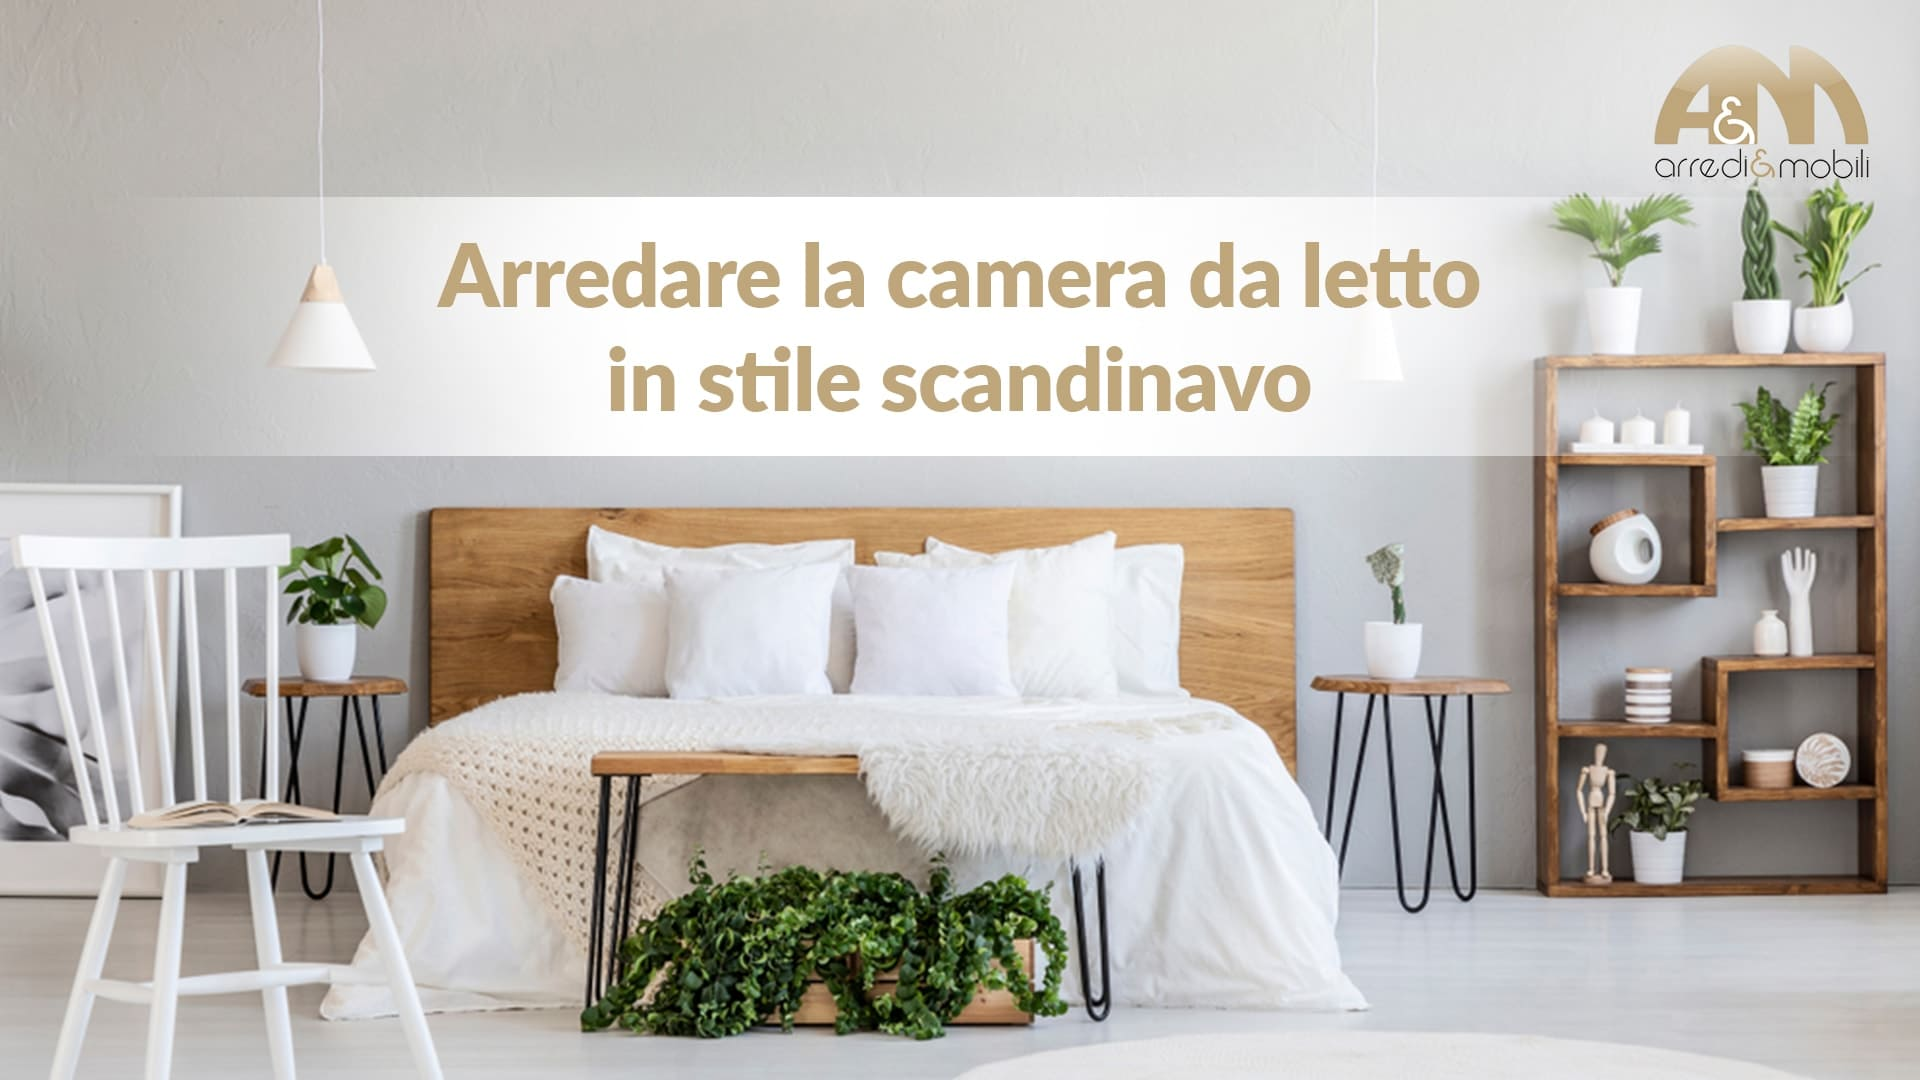 Design Scandinavo Camera Da Letto.Cosa Serve Per Arredare La Camera Da Letto In Stile Scandinavo